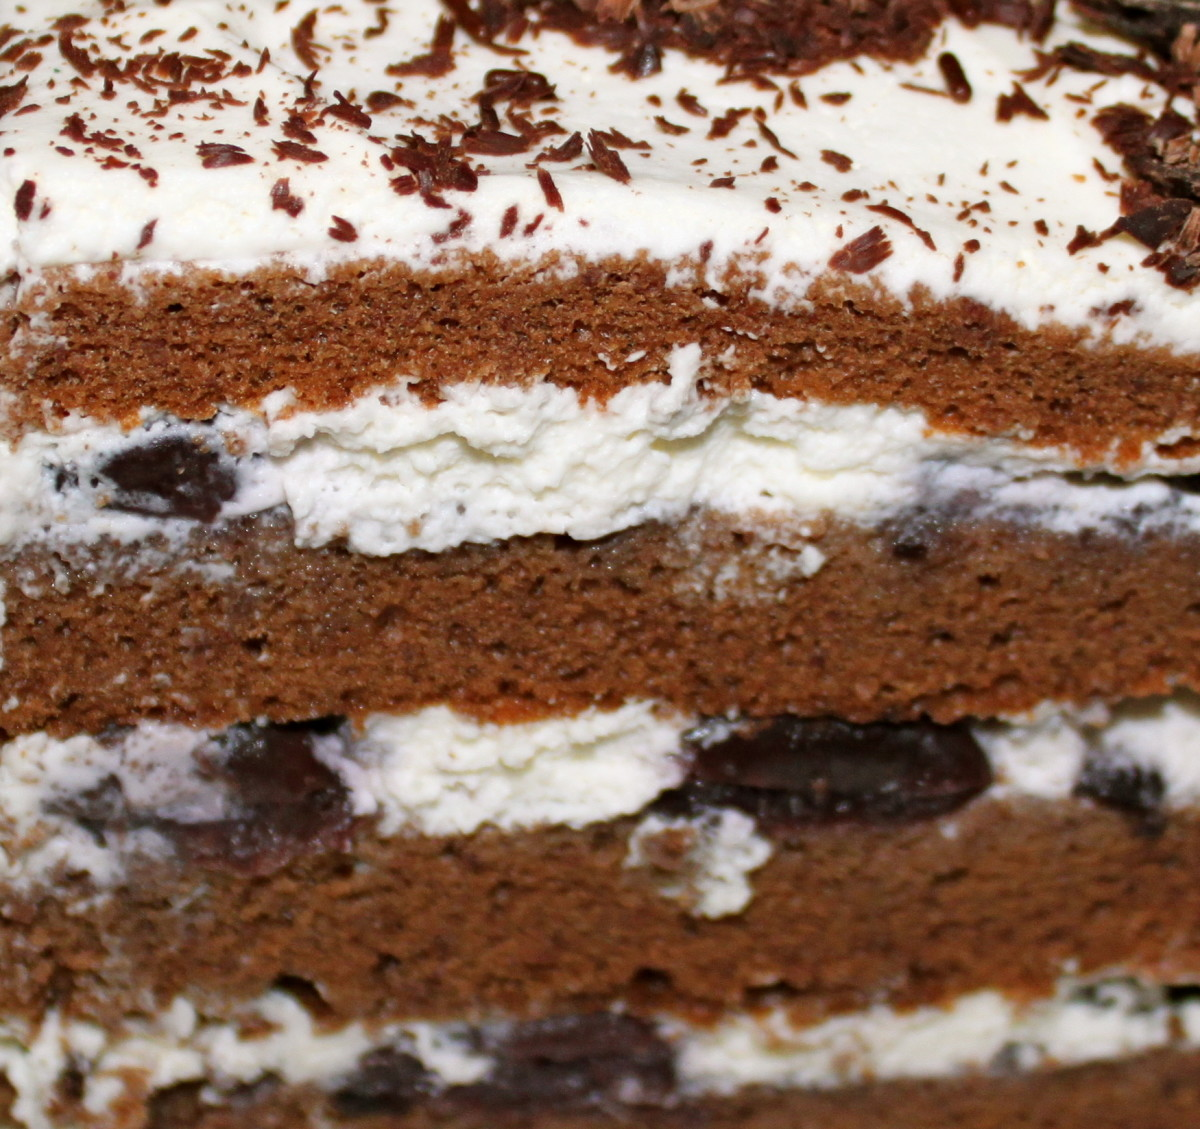 Forget The Cheese: A Chocolate Cake Will Win Smiles